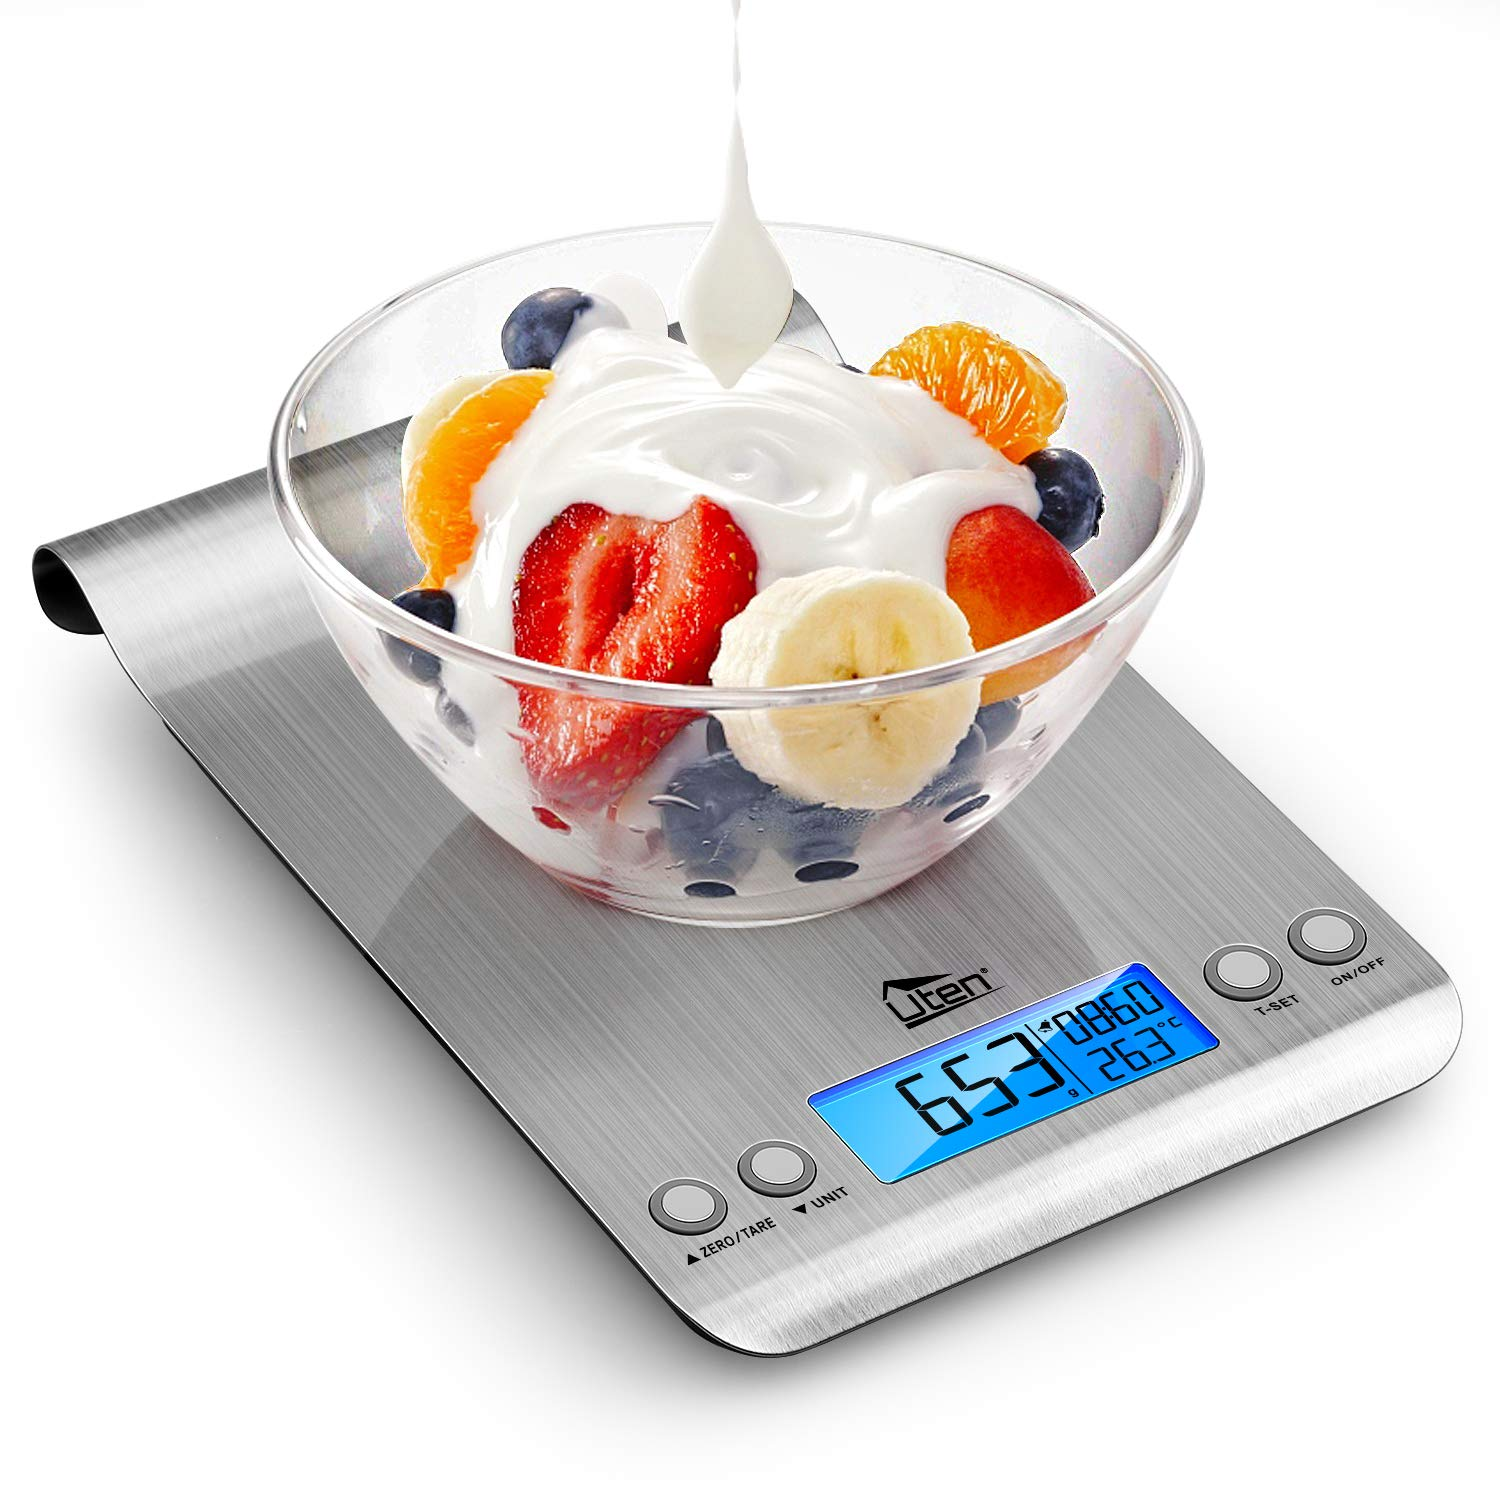 Uten Digital Kitchen Scale for Baking and Cooking, 11lb Ultra Slim Food Scale Grams and Ounces - with Hook Design, LCD Display, Timer